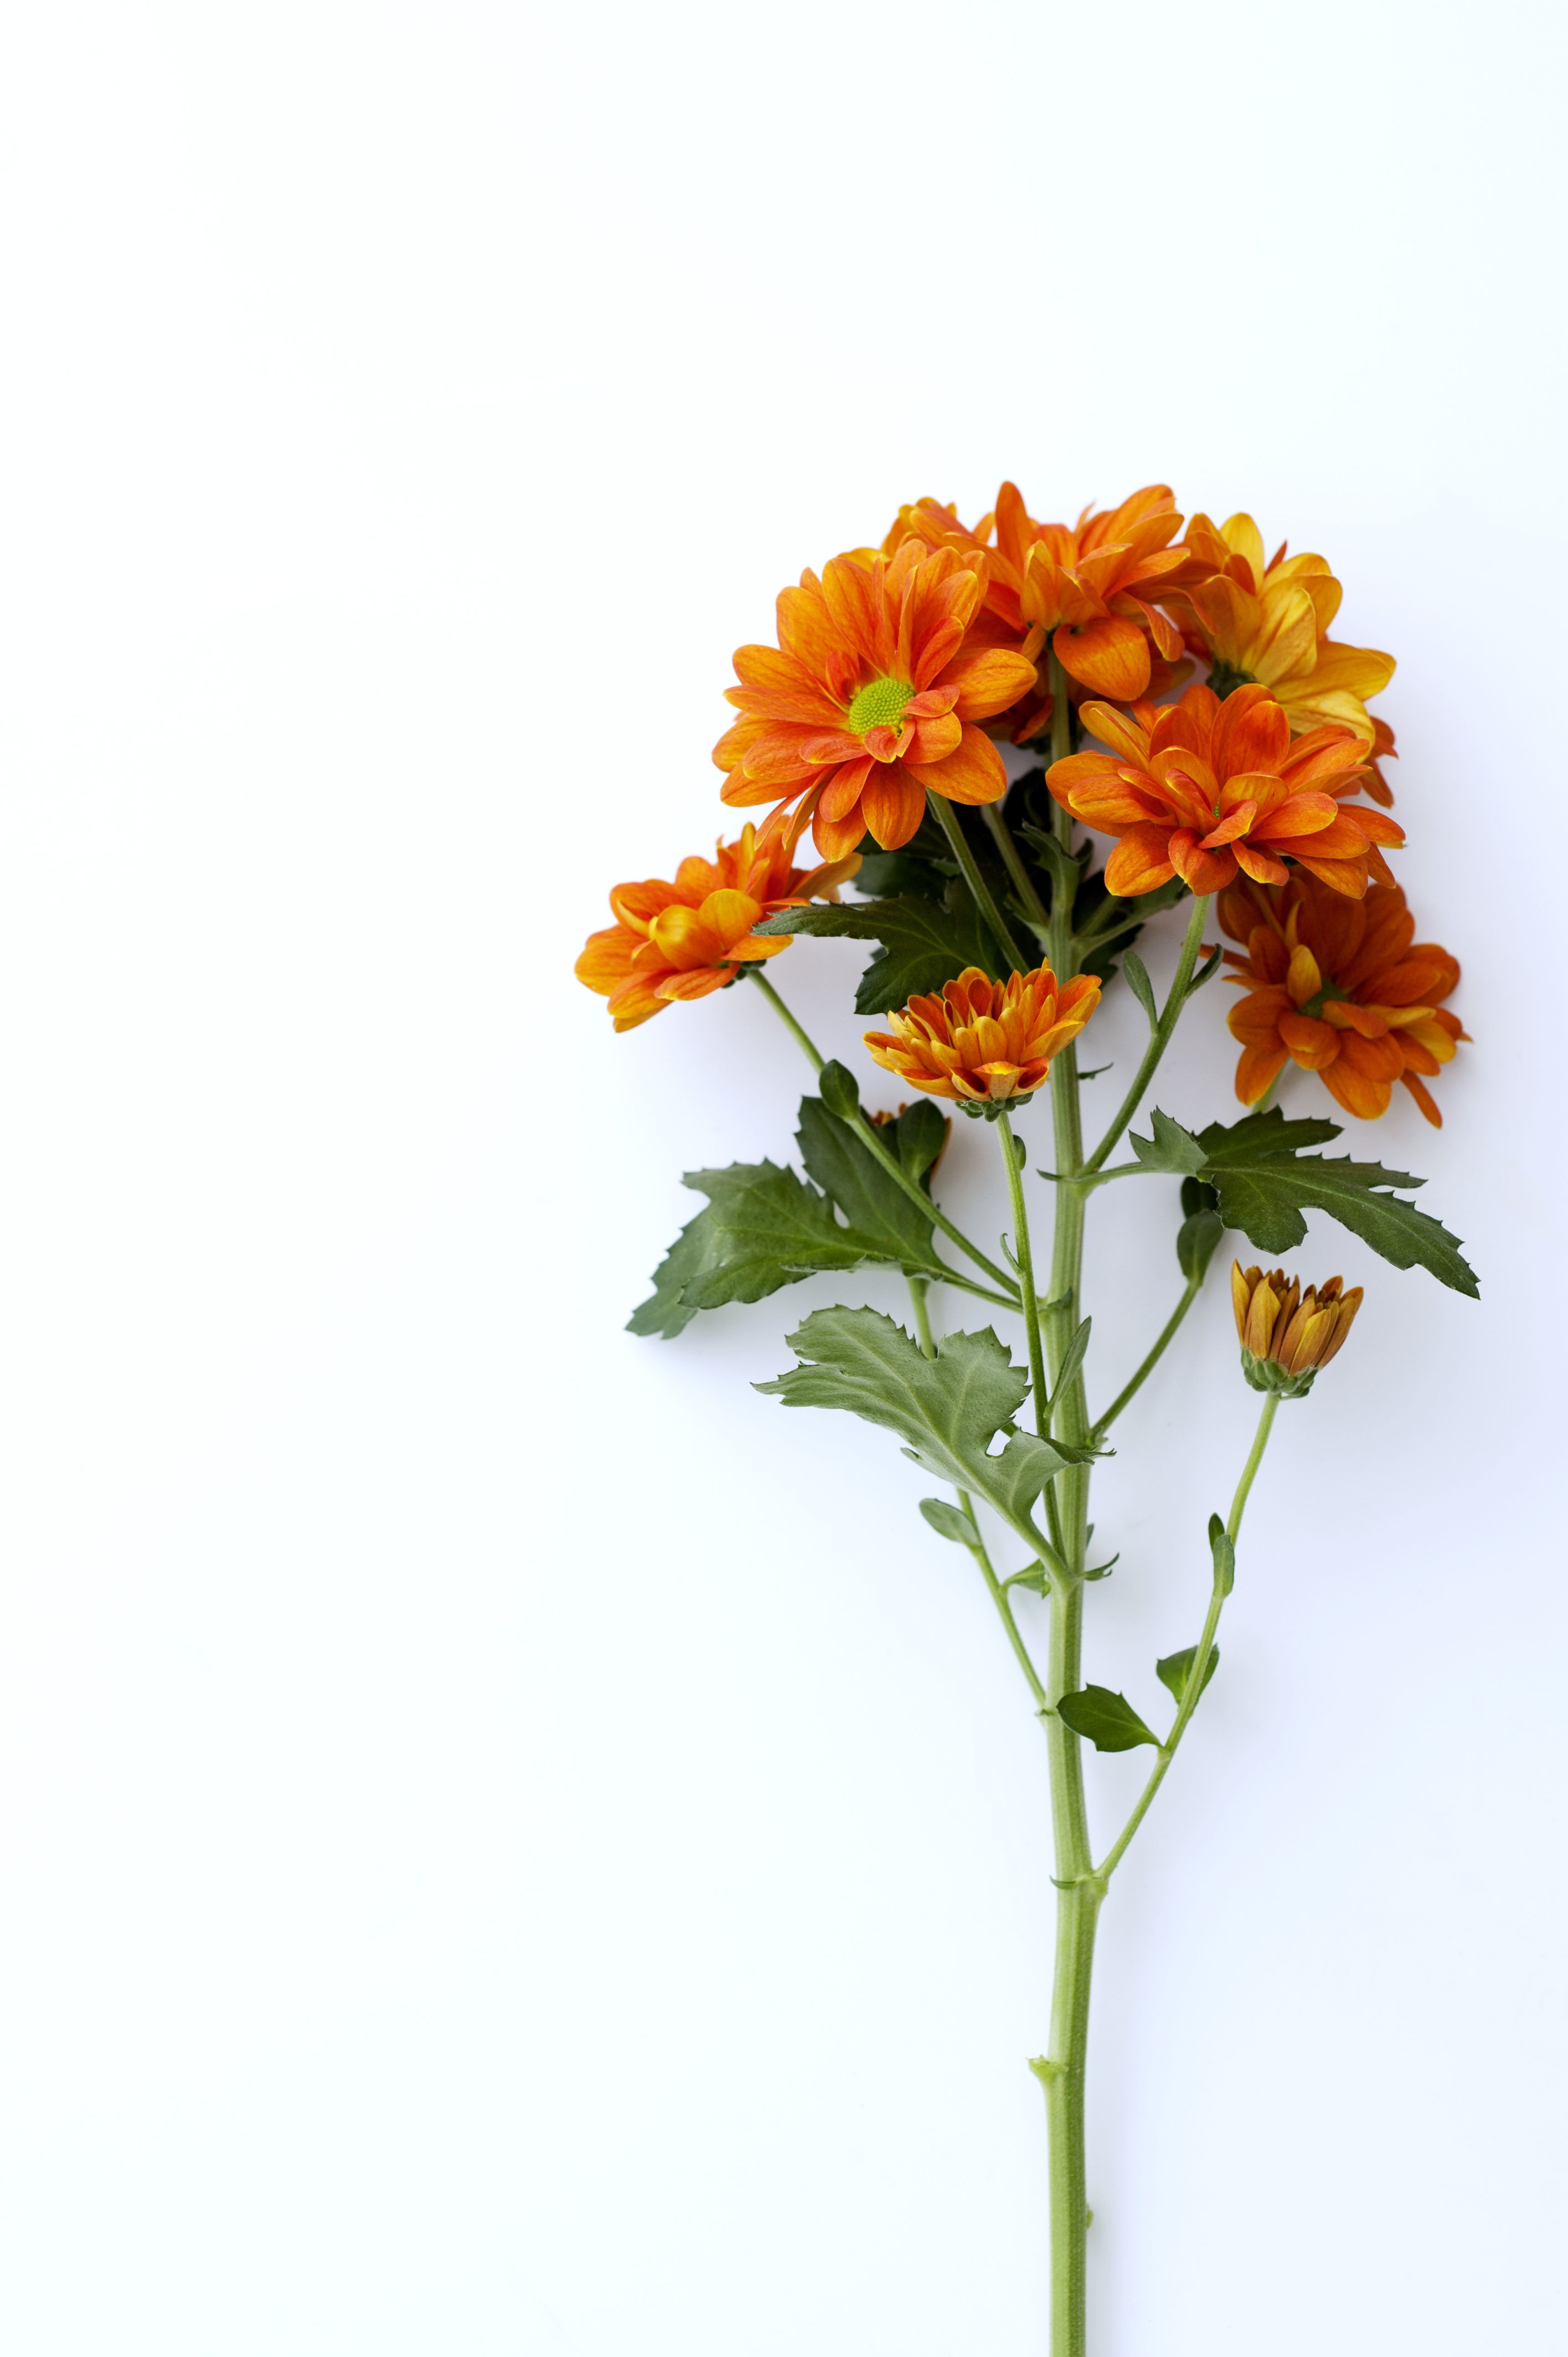 hight resolution of a single stem of the orange chrysanthemum flower